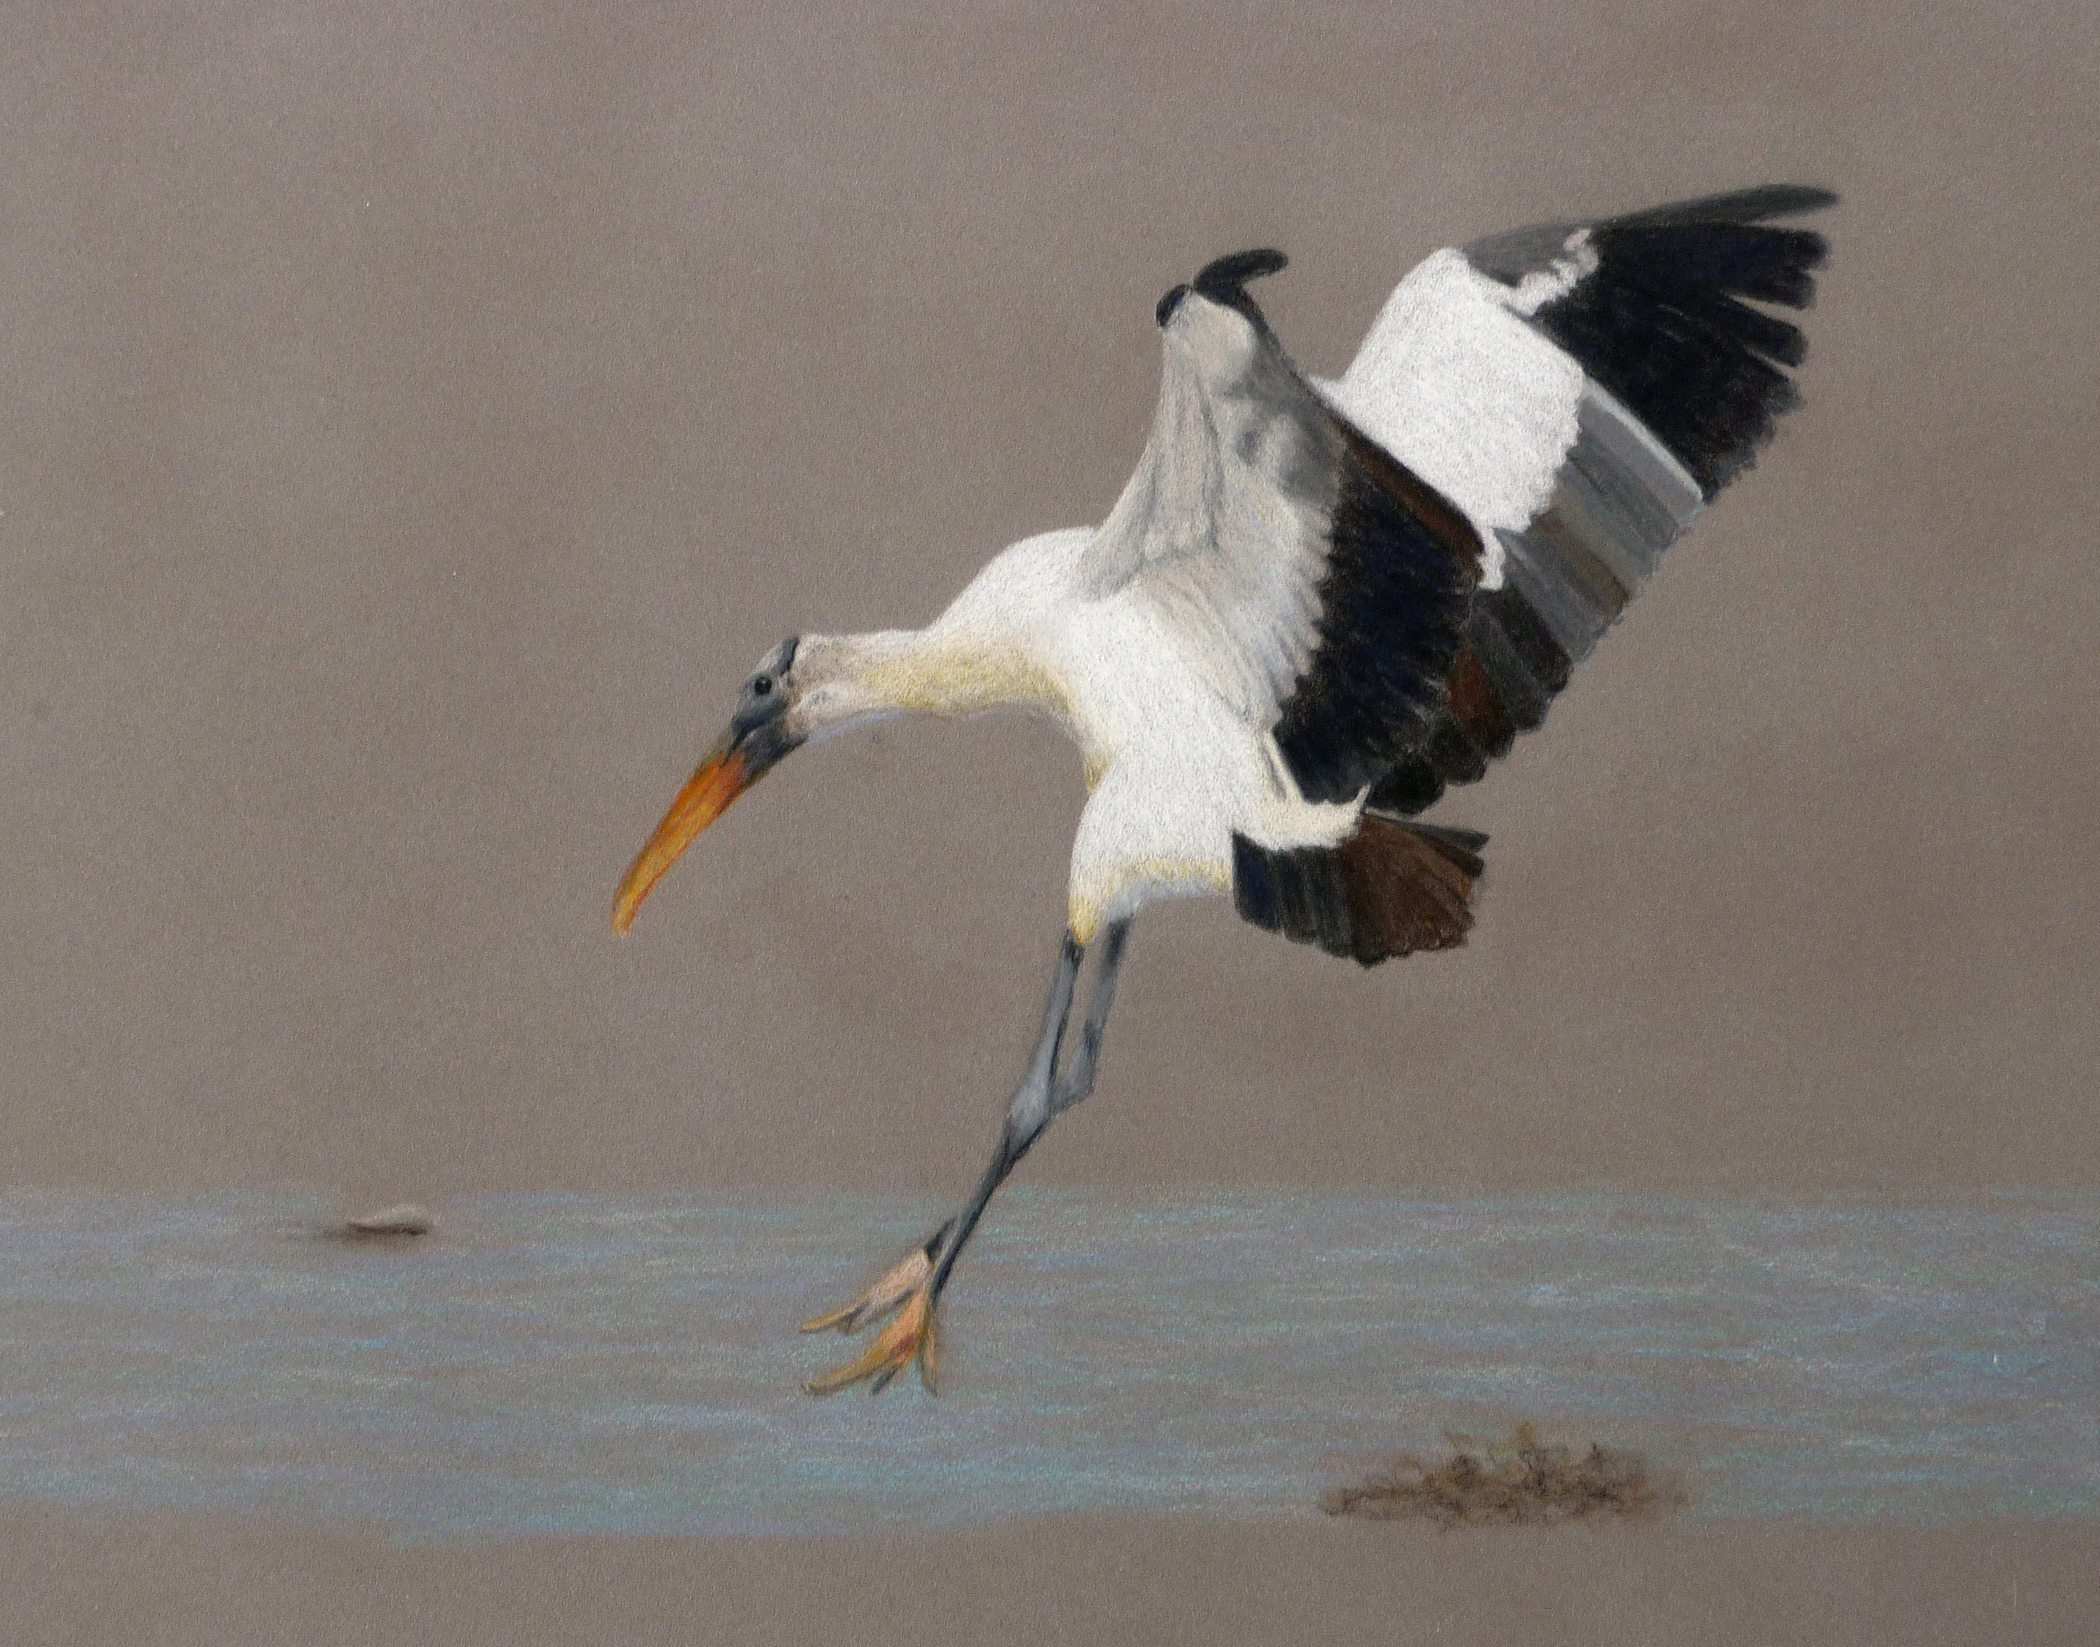 coming down to earth painting for the st augustine art association wildlife exhibit